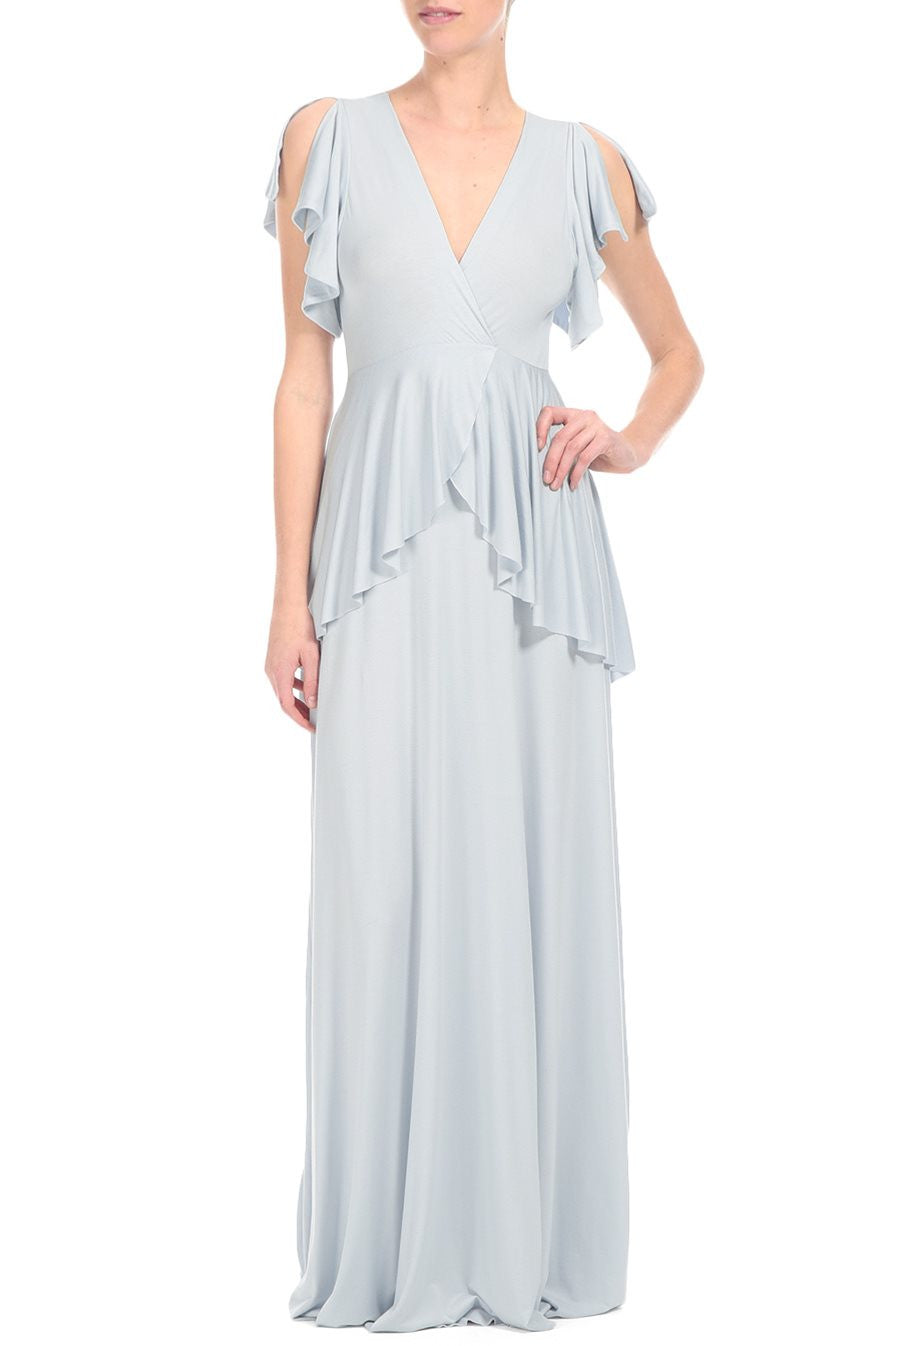 GATSBY DRESS - ICE